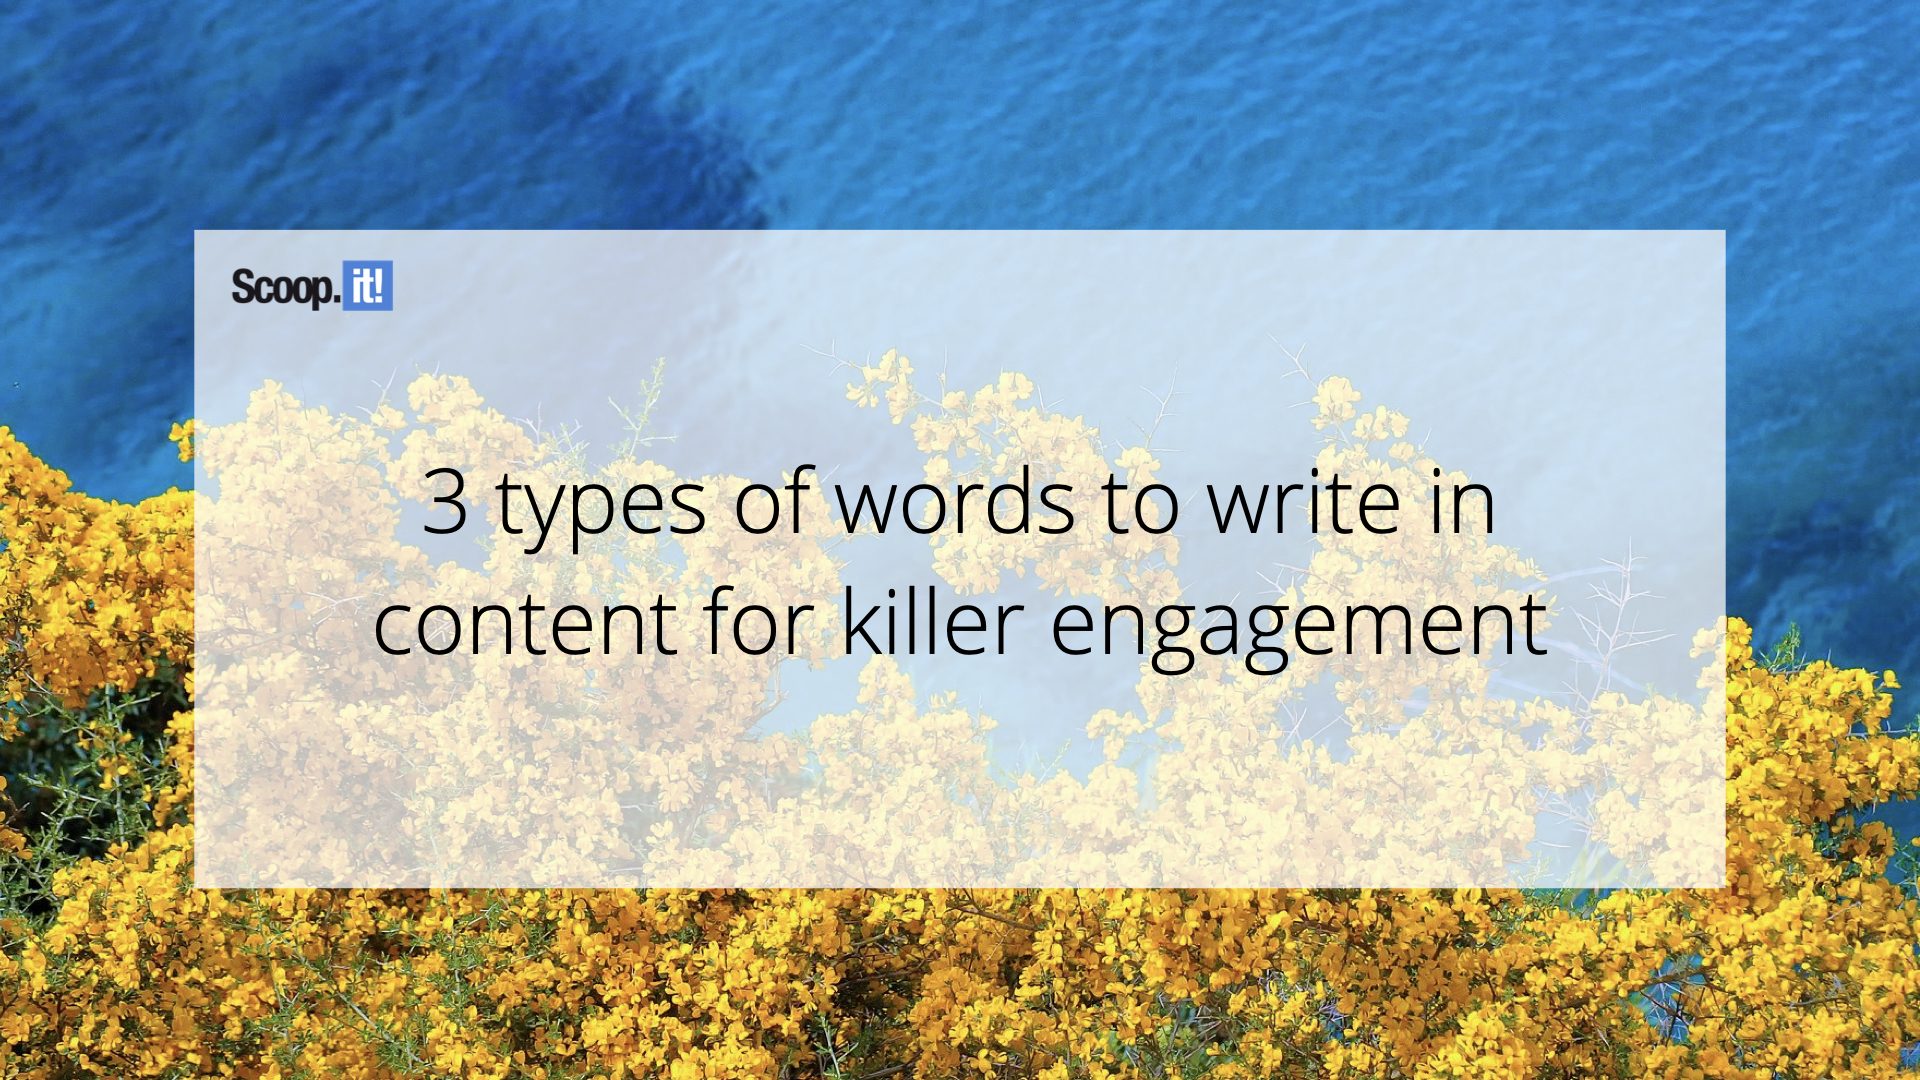 3 Types of Words to Write in Content for Killer Engagement